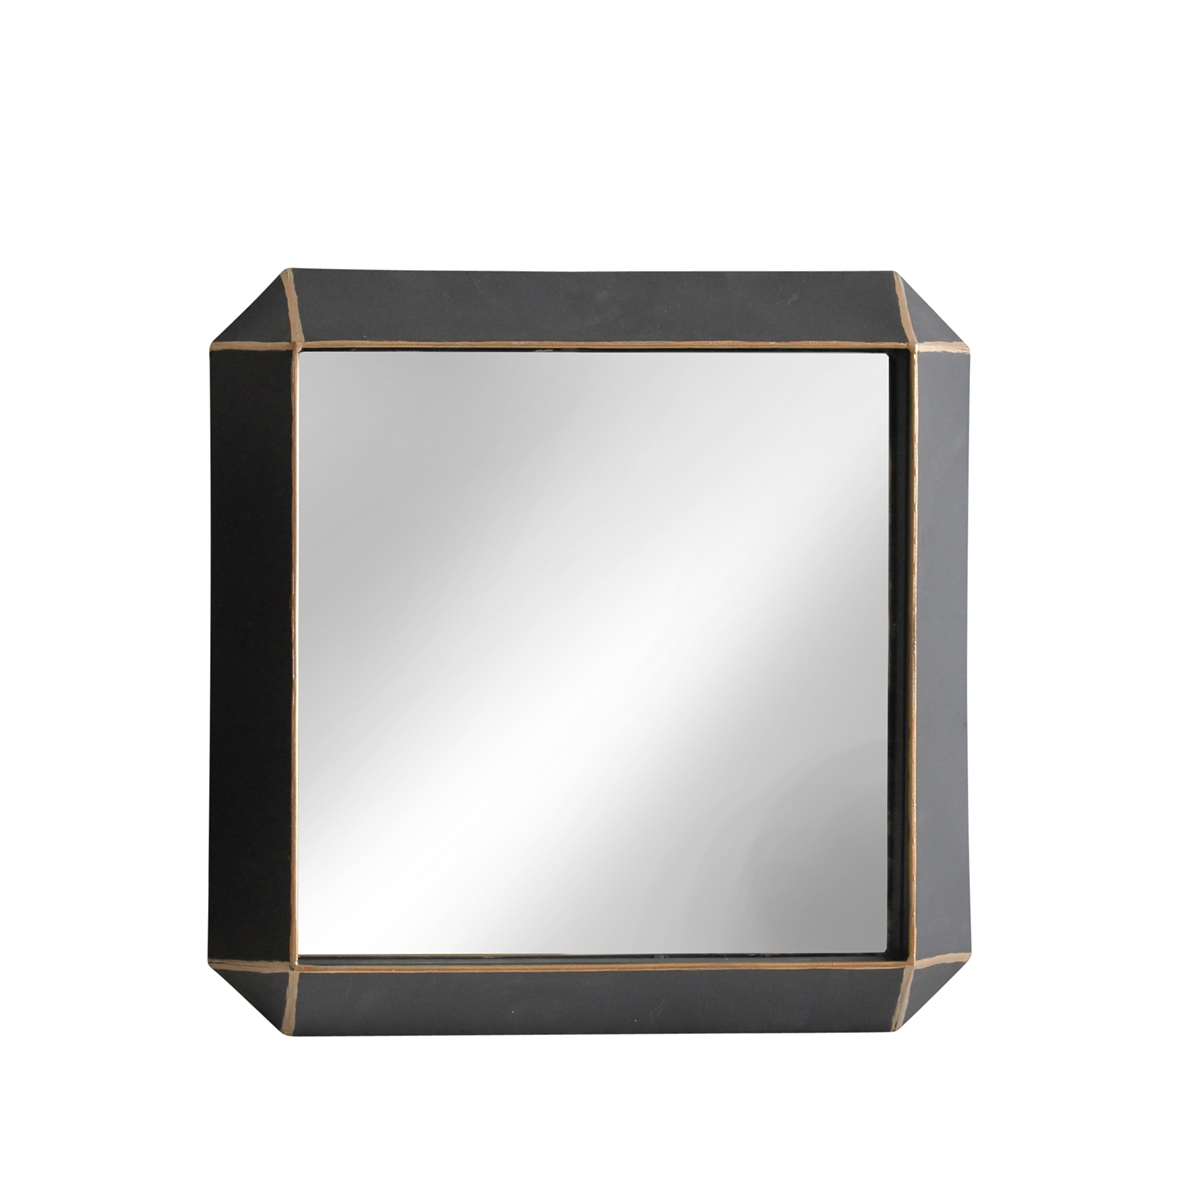 "Metal Frame Wall Mirrors With Regard To Newest Metal Frame 22"" Wall Mirror ,black – Wb (View 5 of 20)"